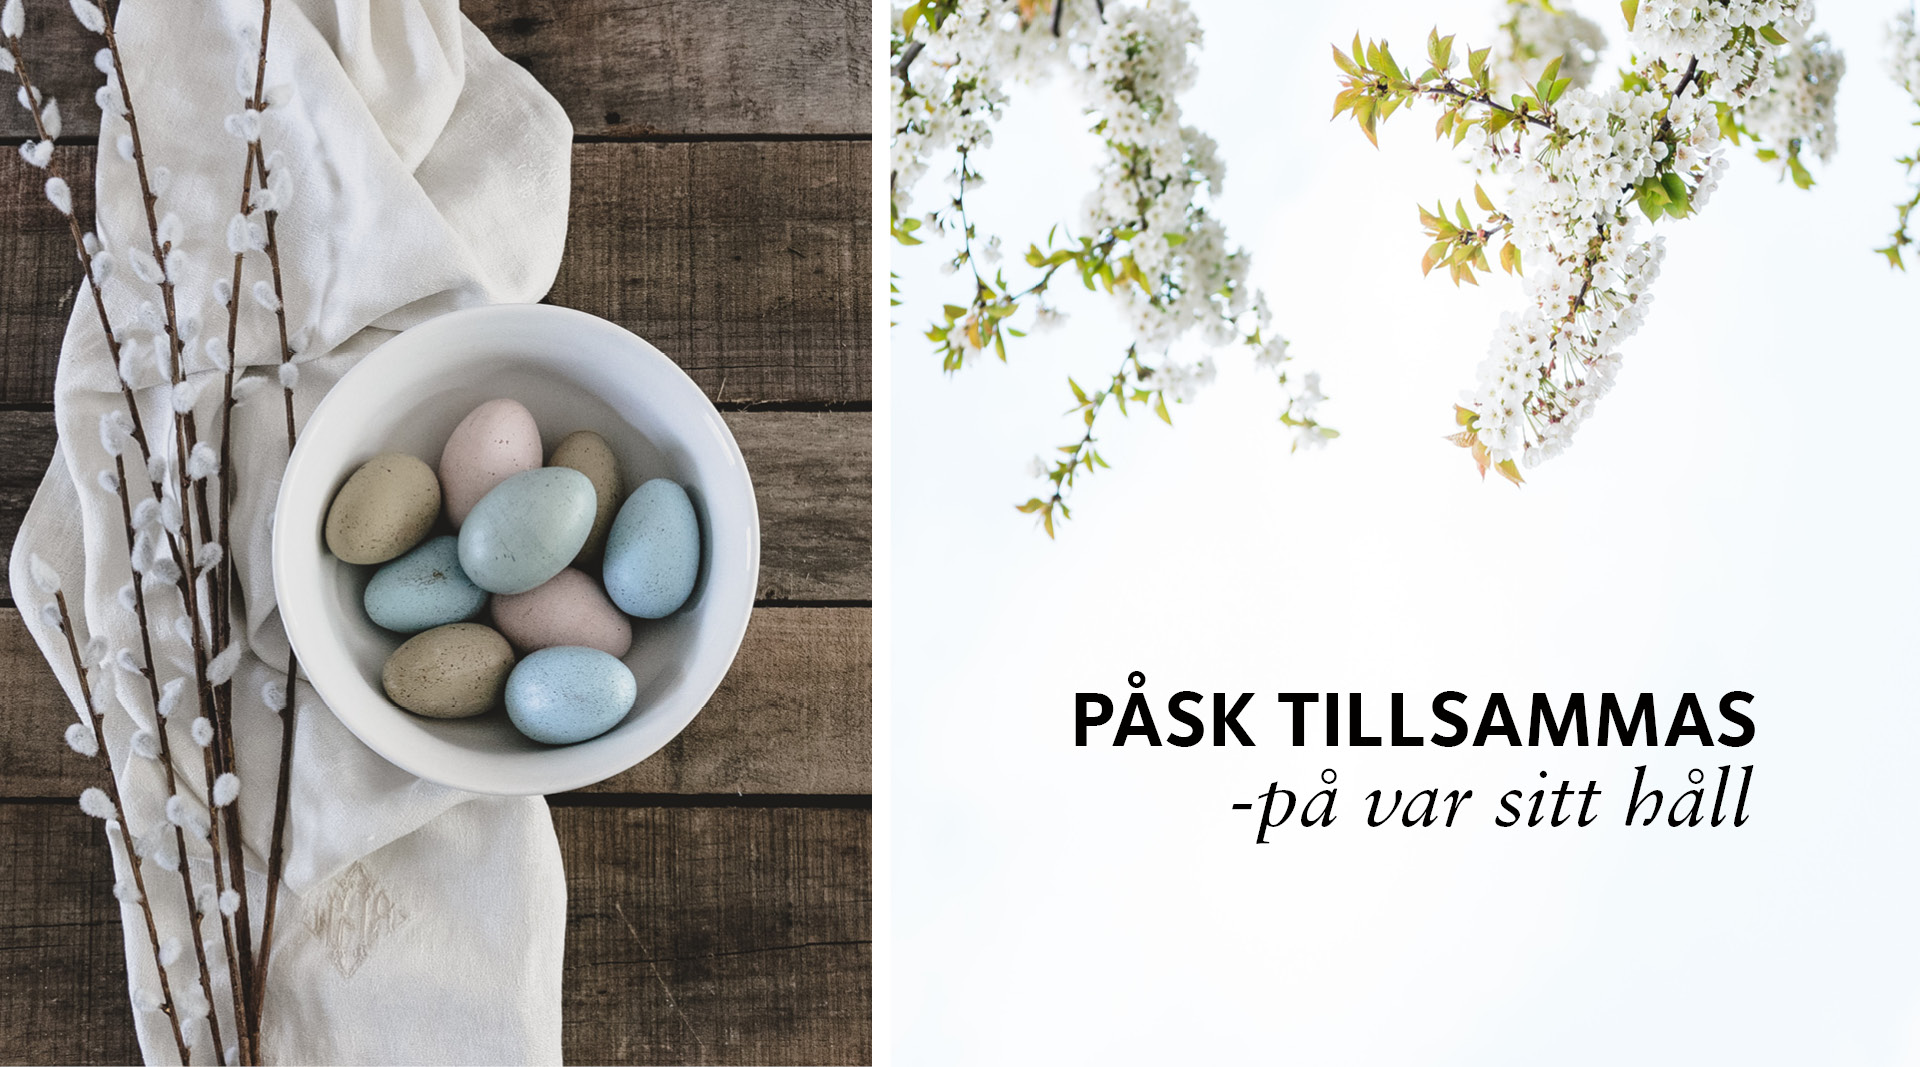 påskens traditioner